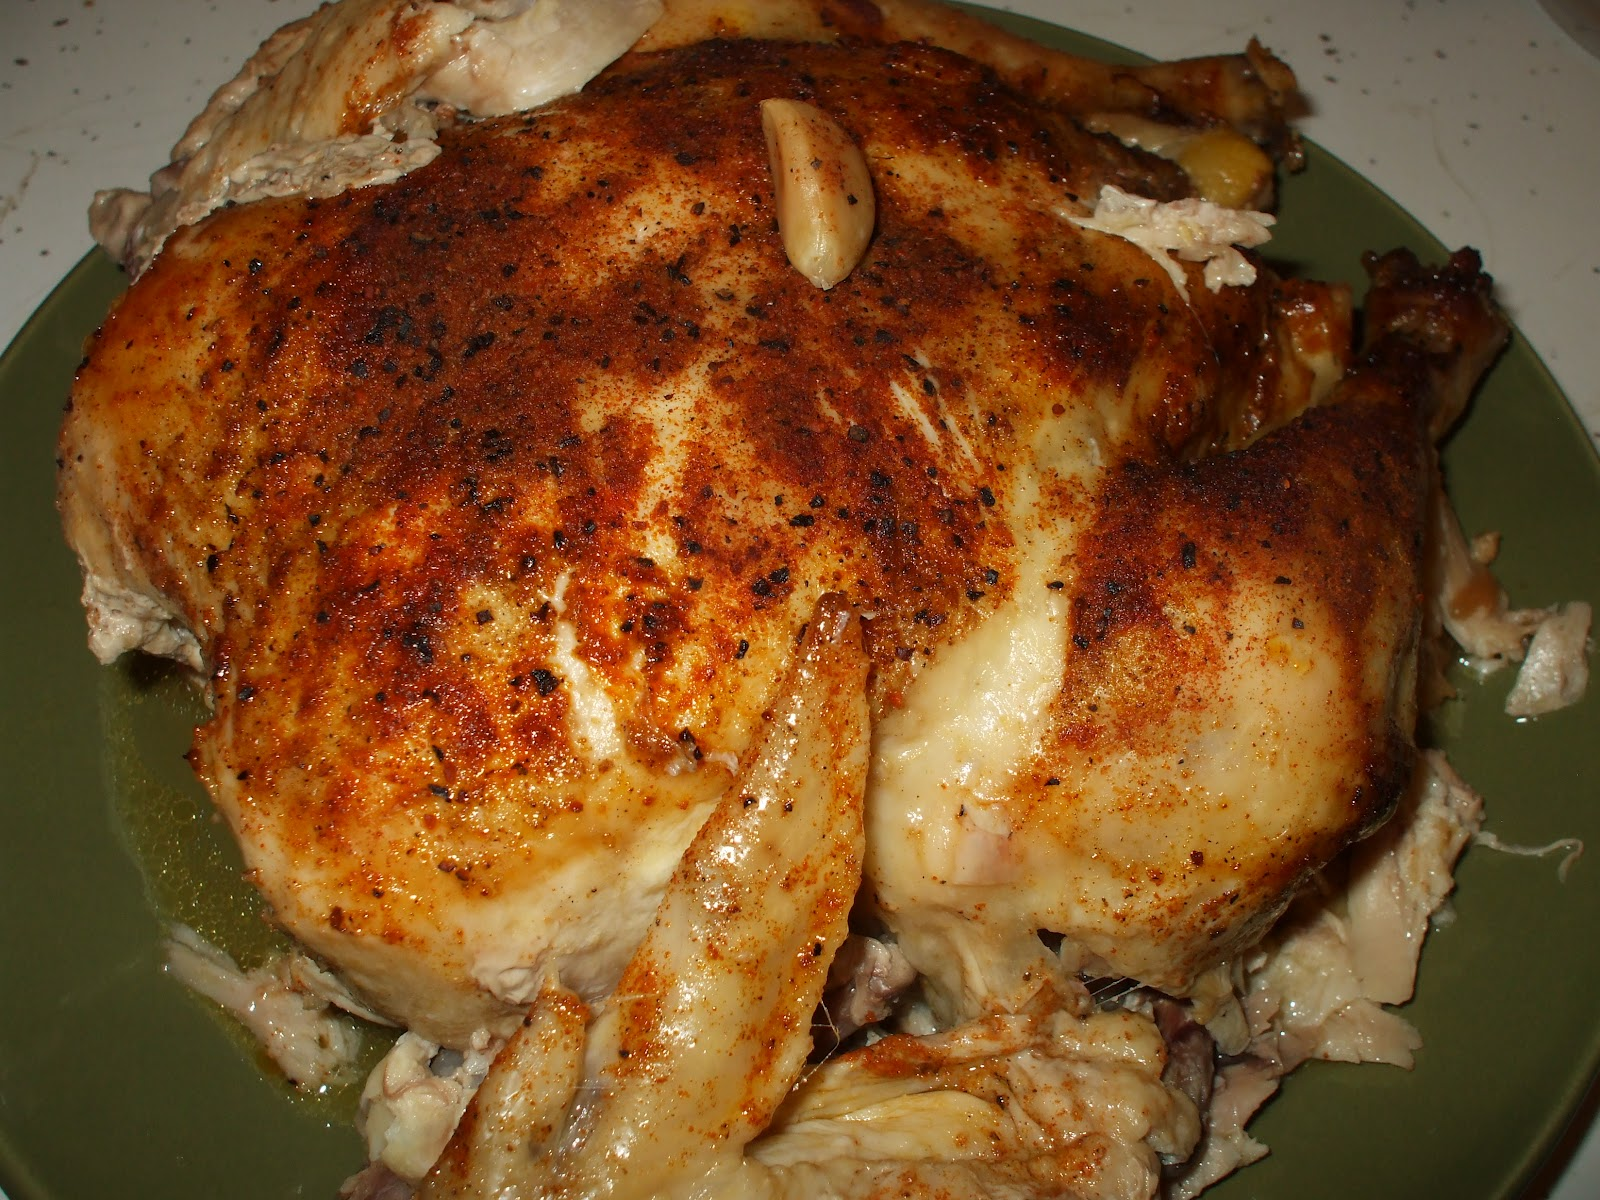 Mar 27, · This slow cooker whole chicken is a rotisserie style seasoned chicken made with the help of the crock pot. It's a super easy dinner option and the leftover chicken 5/5(10).